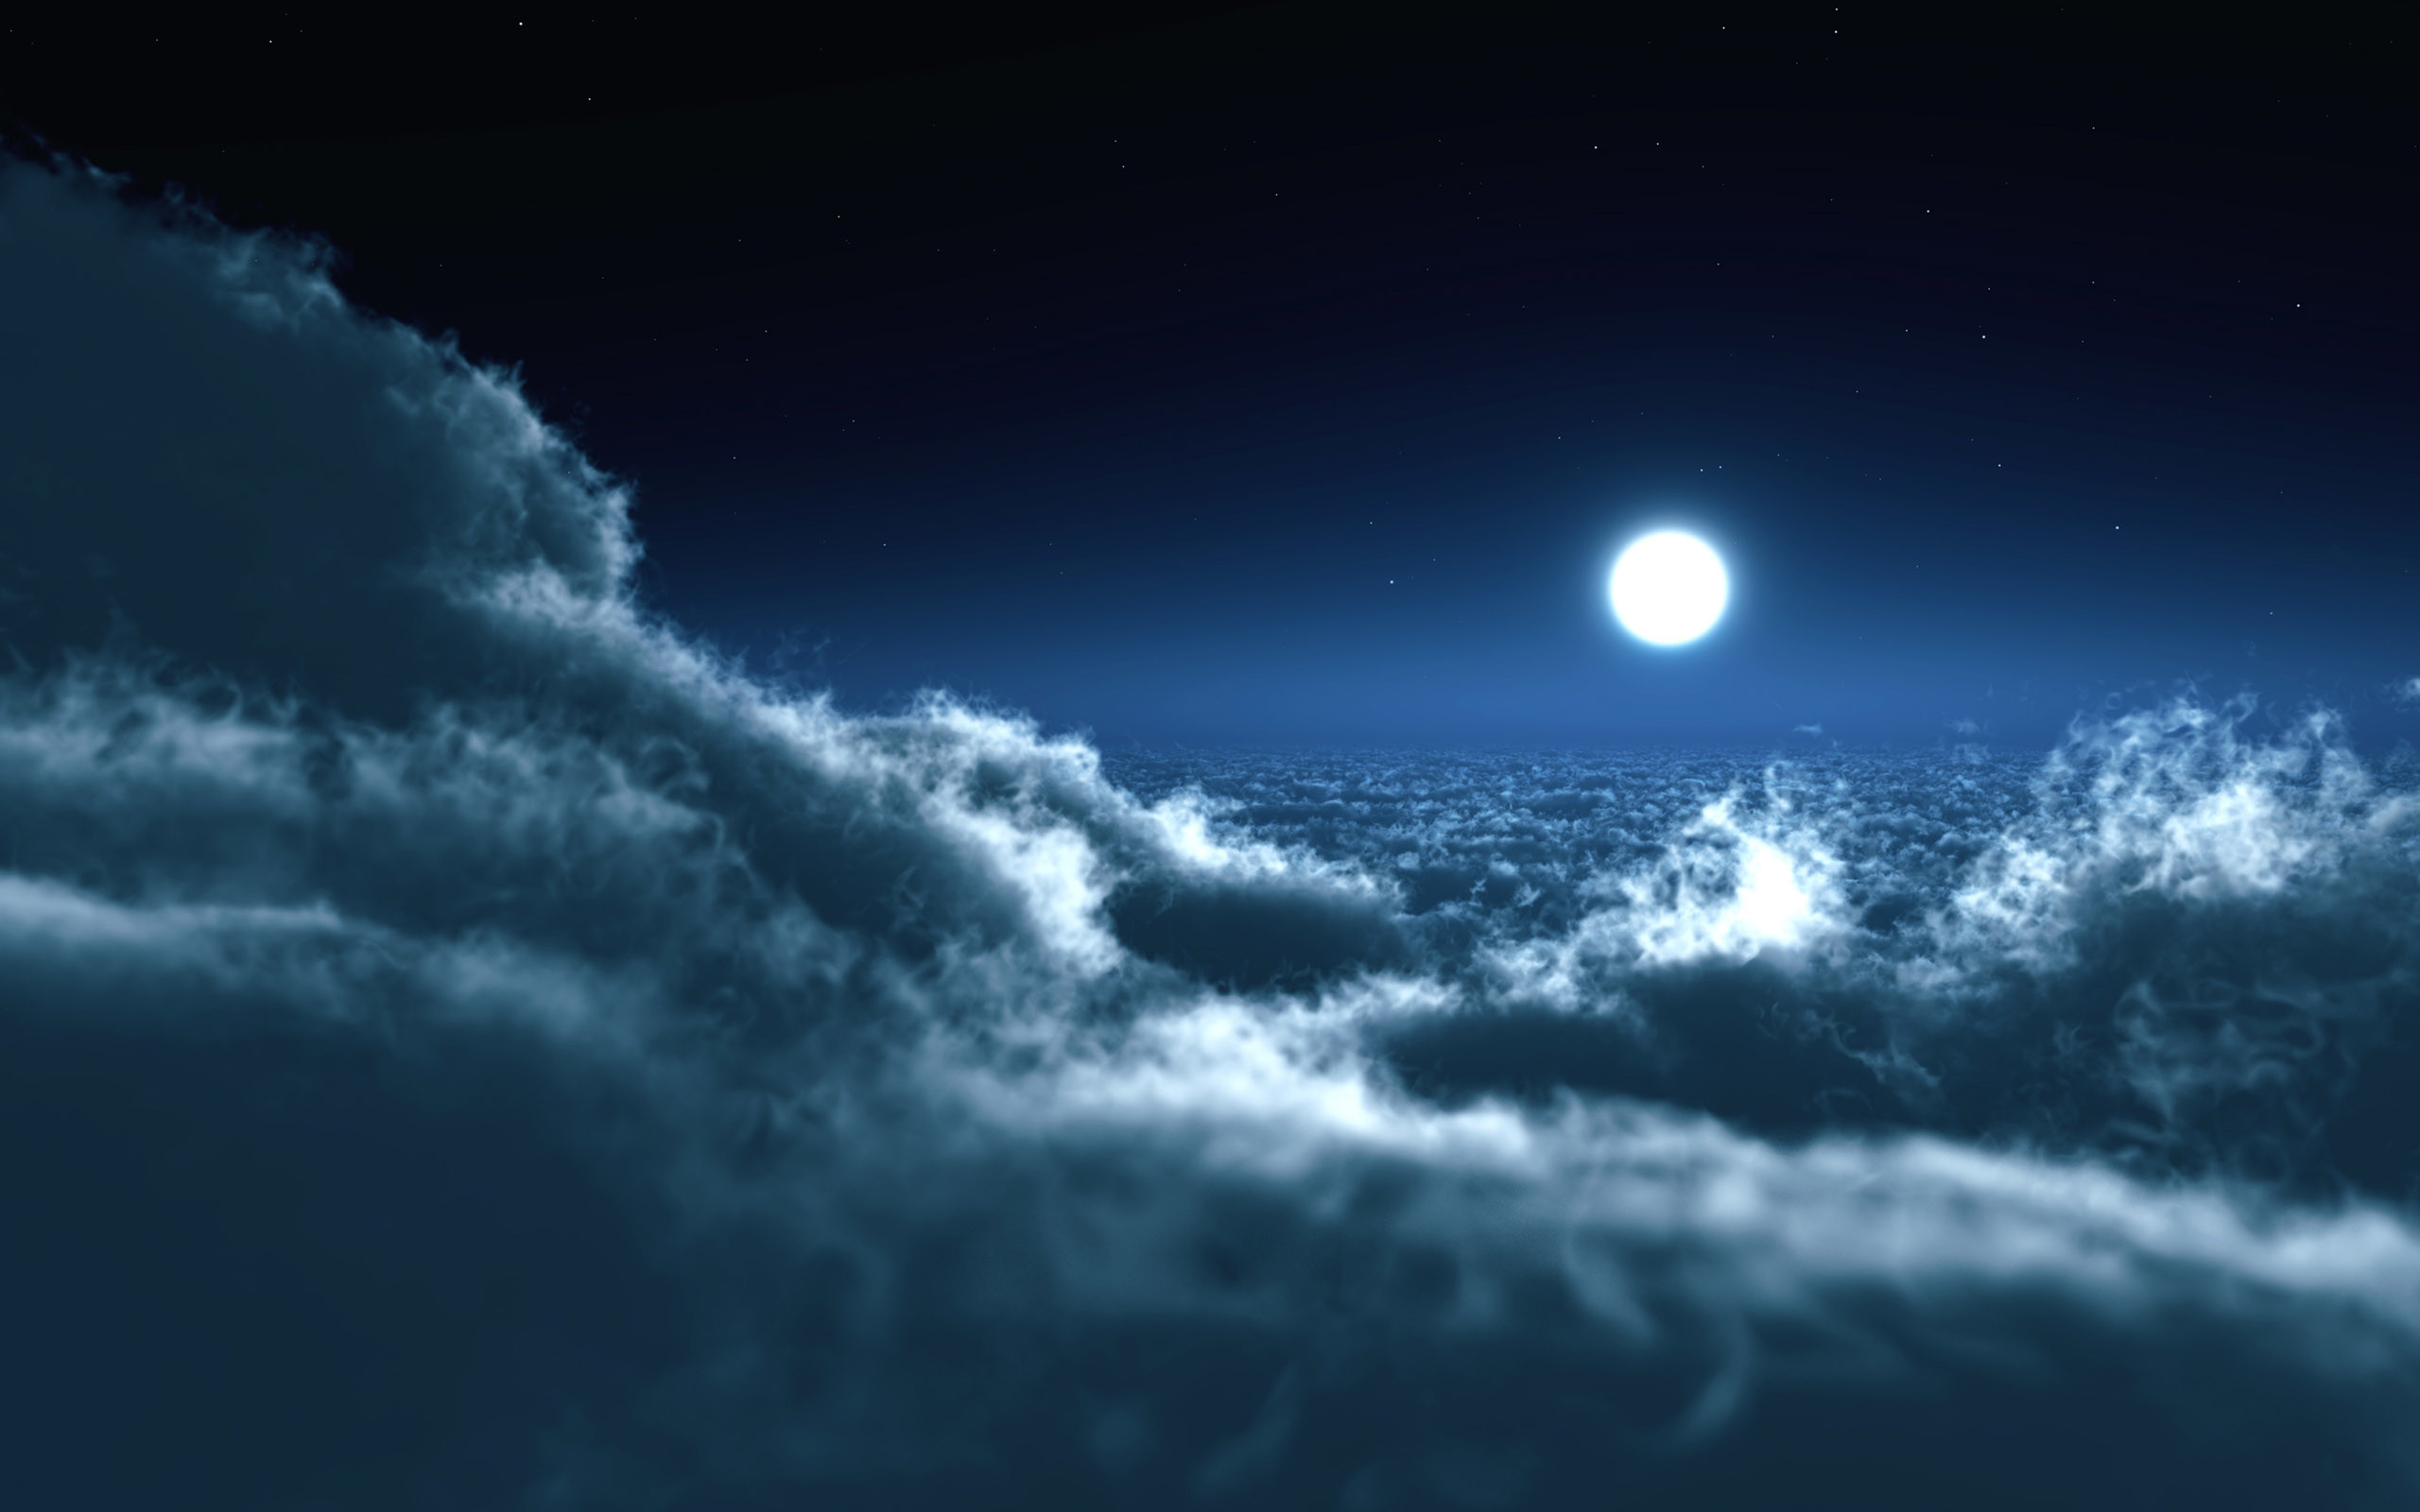 2560x1600 night cloud wallpaper hd desktop wallpapers 4k high definition windows 10  mac apple colourful images backgrounds